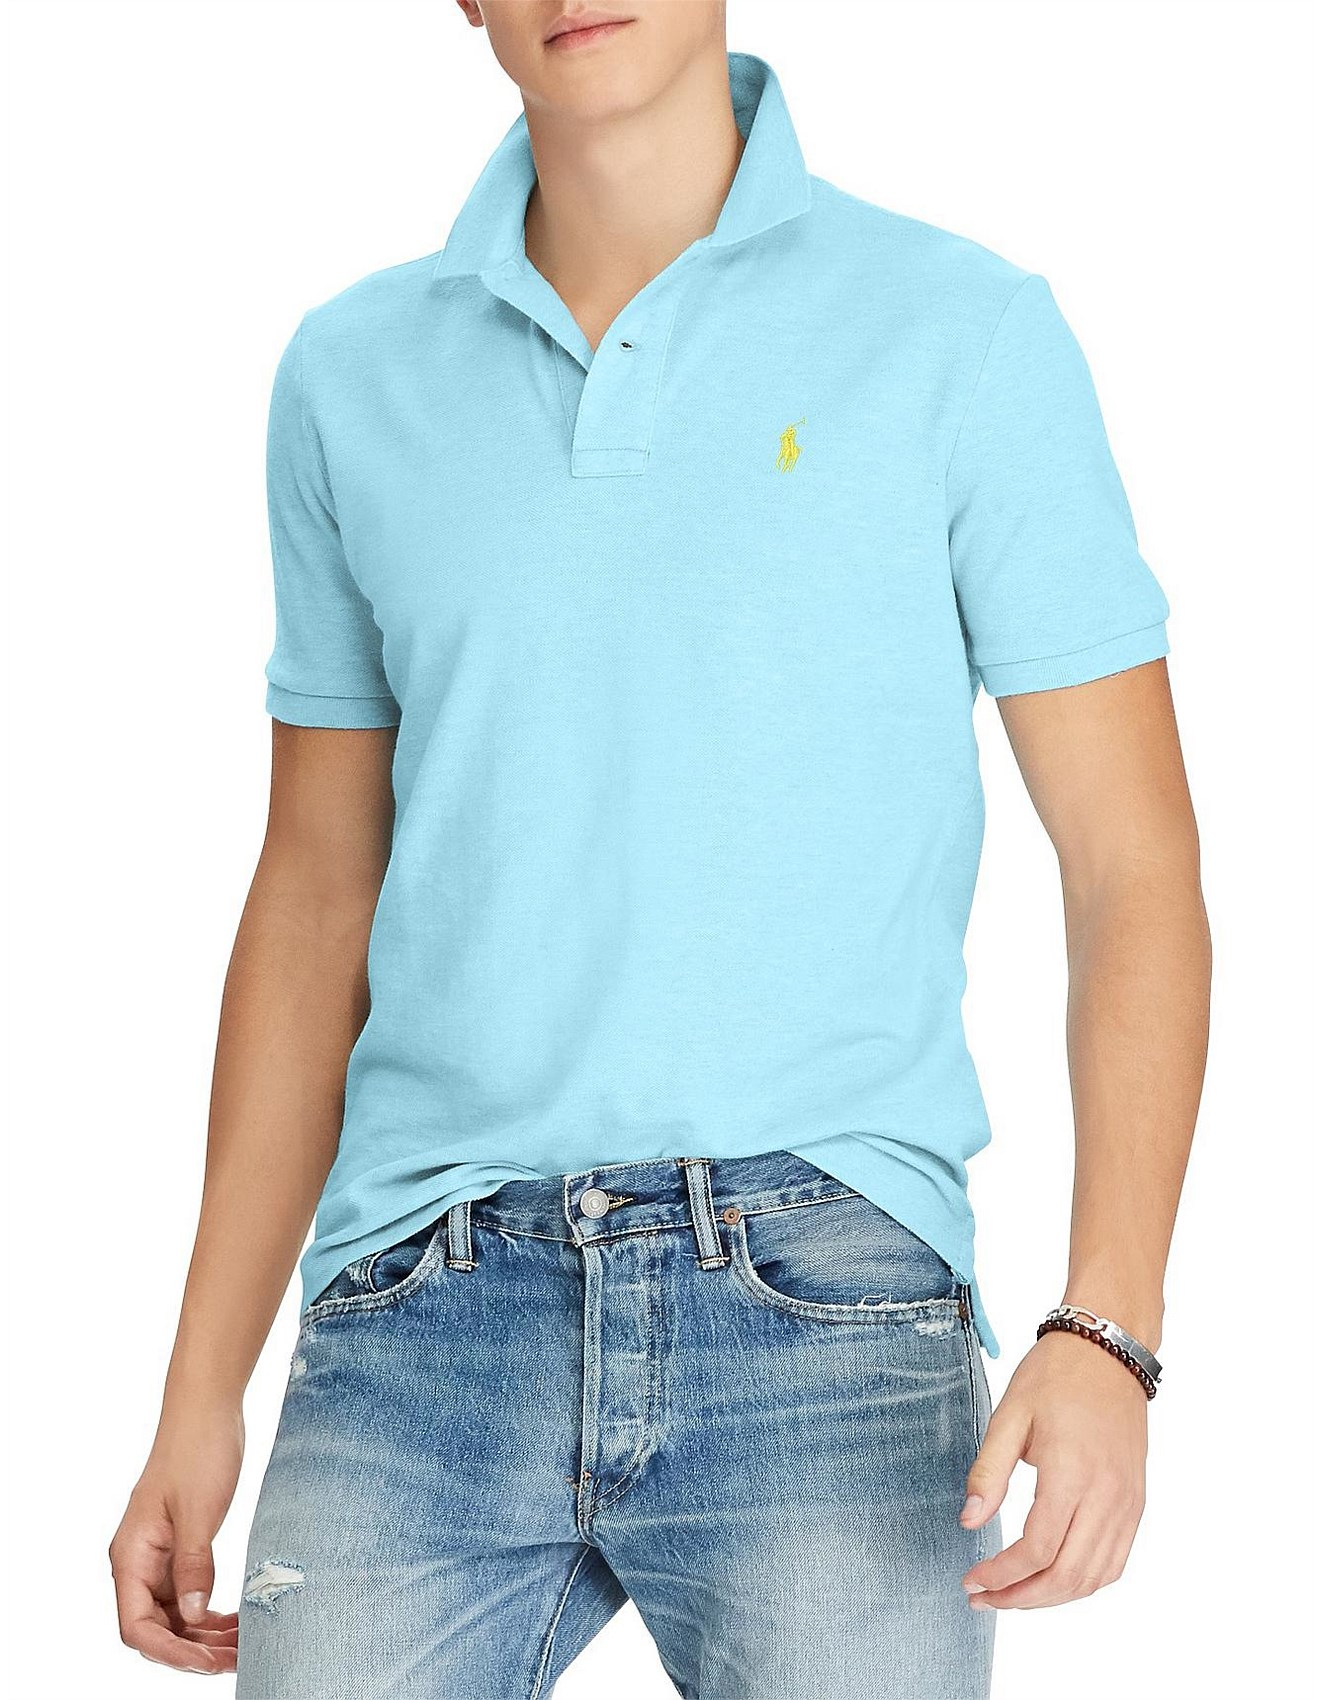 7e2f861d272 Men - Mens Custom Slim Fit Mesh Polo